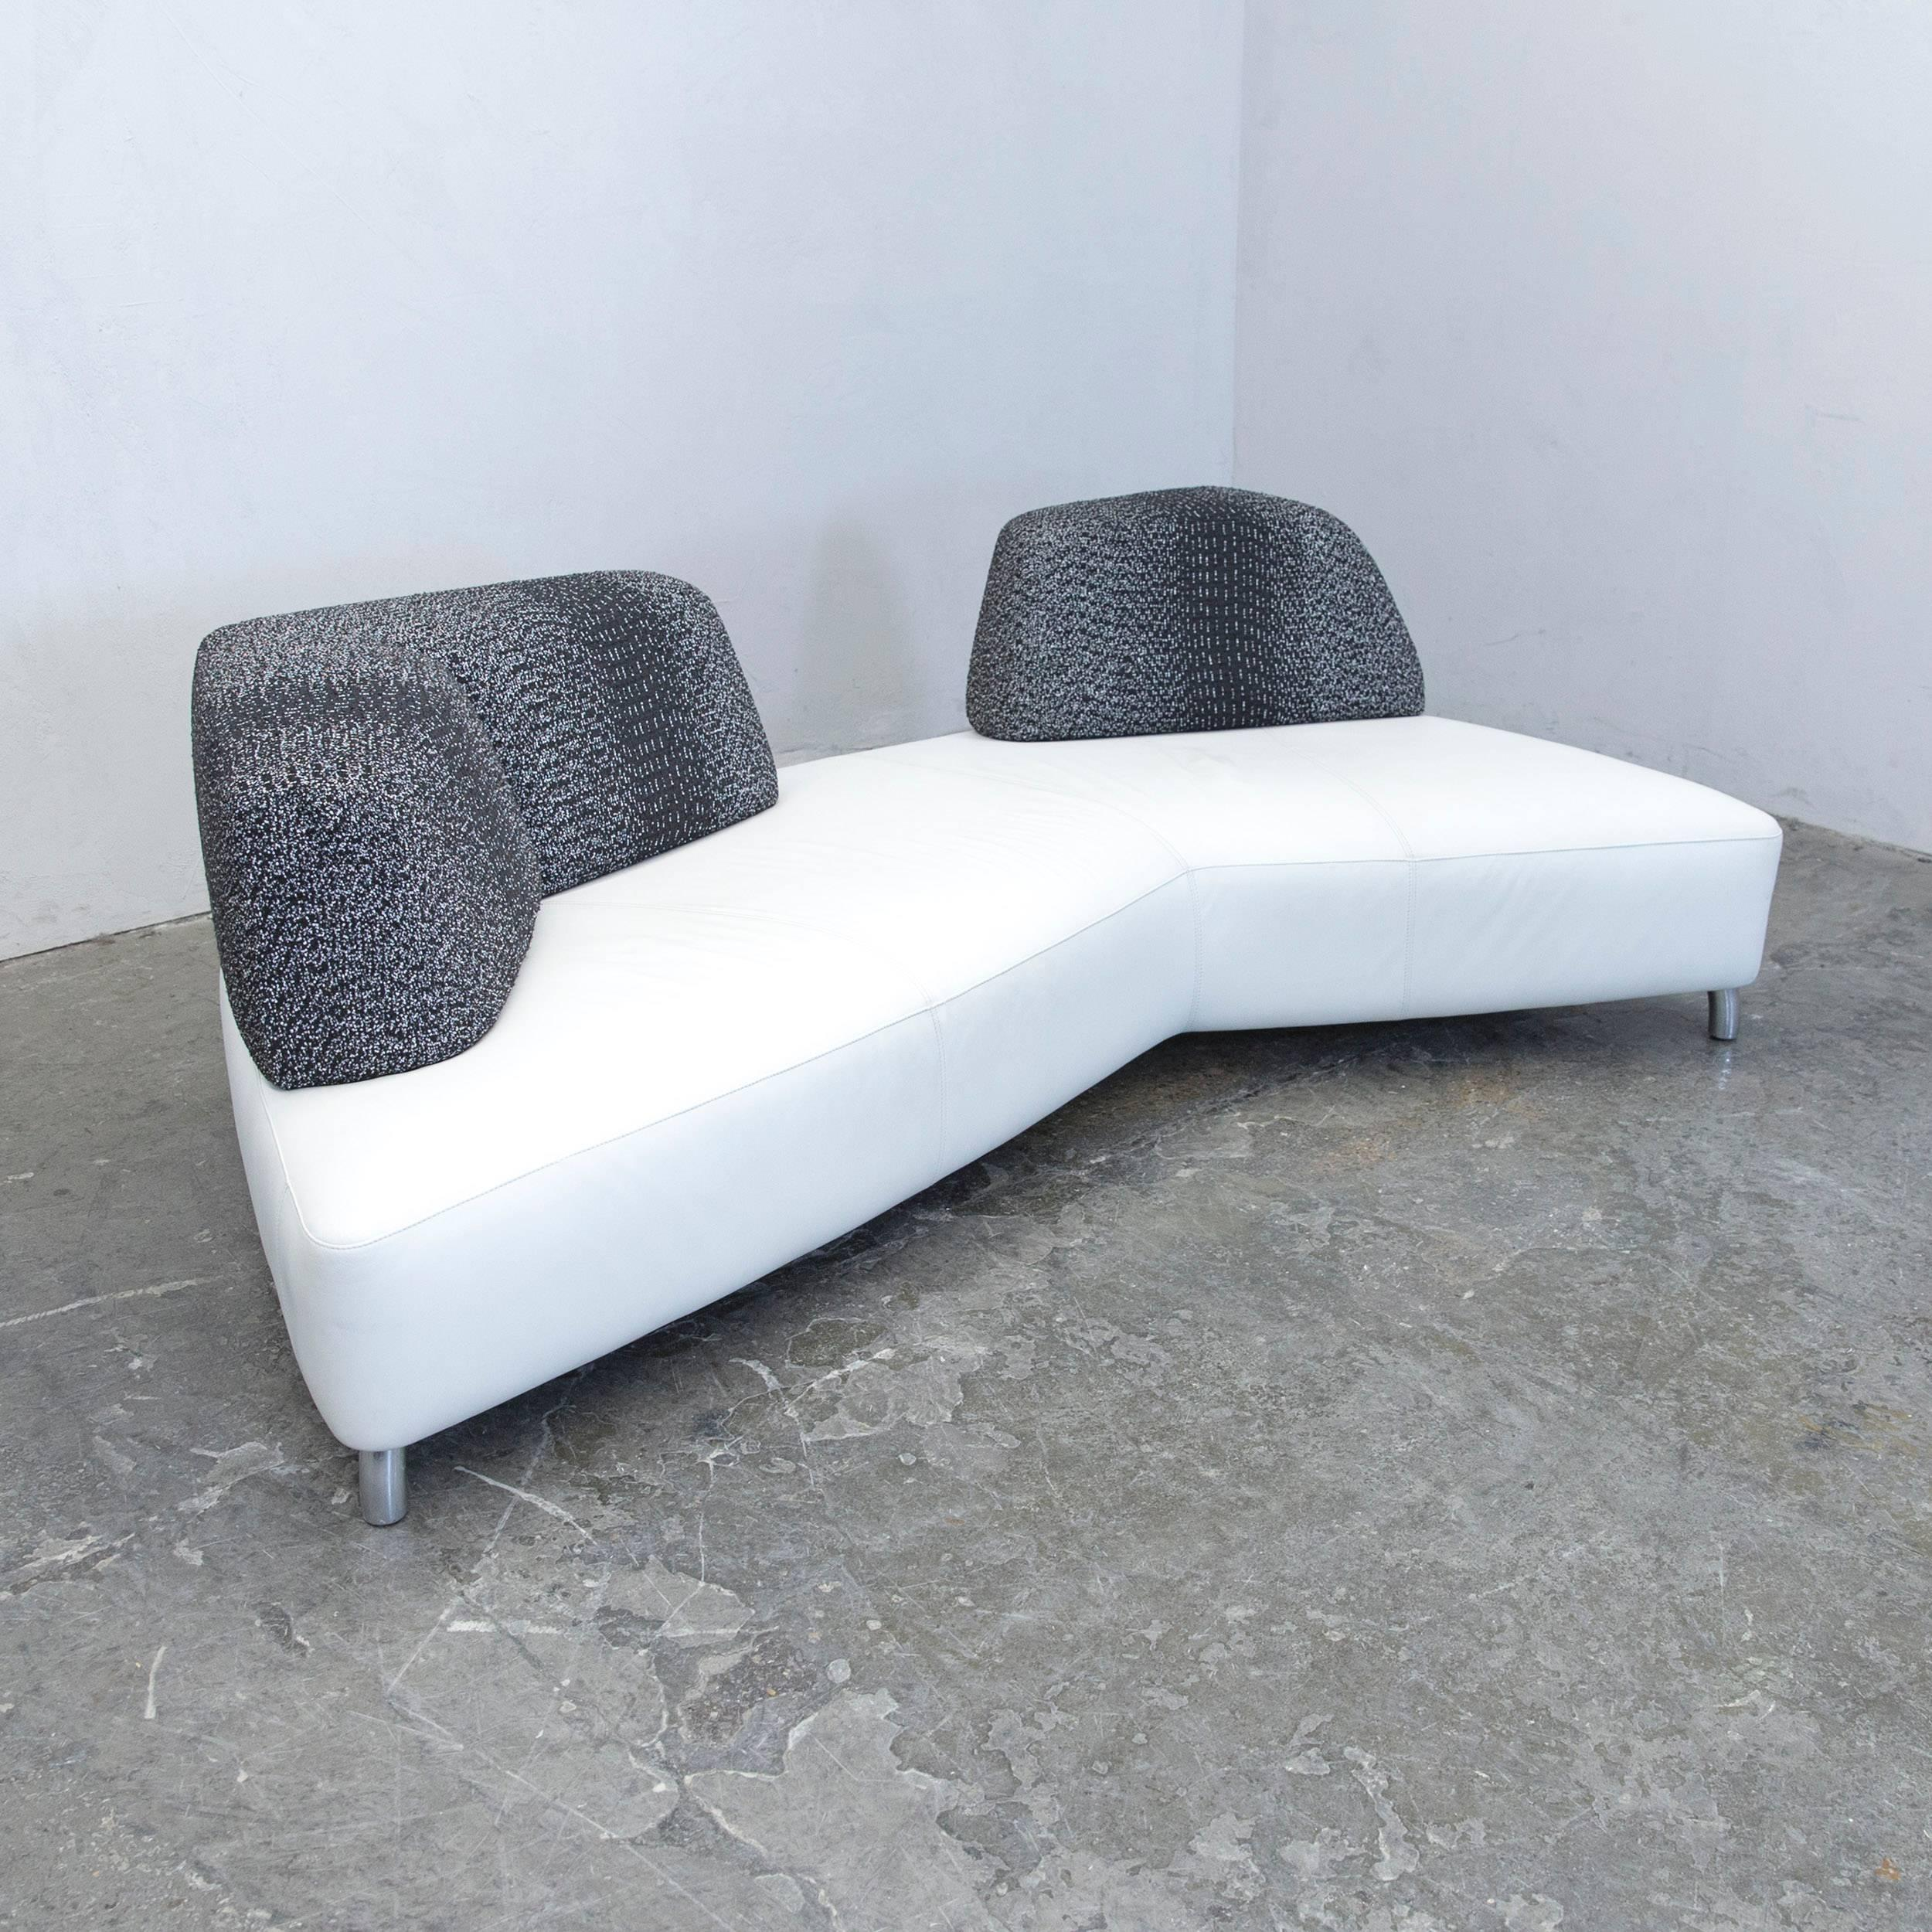 Interliving Ecksofa Joop Ecksofa Parasta Ideaa Iss Ewald Schillig Sofa With